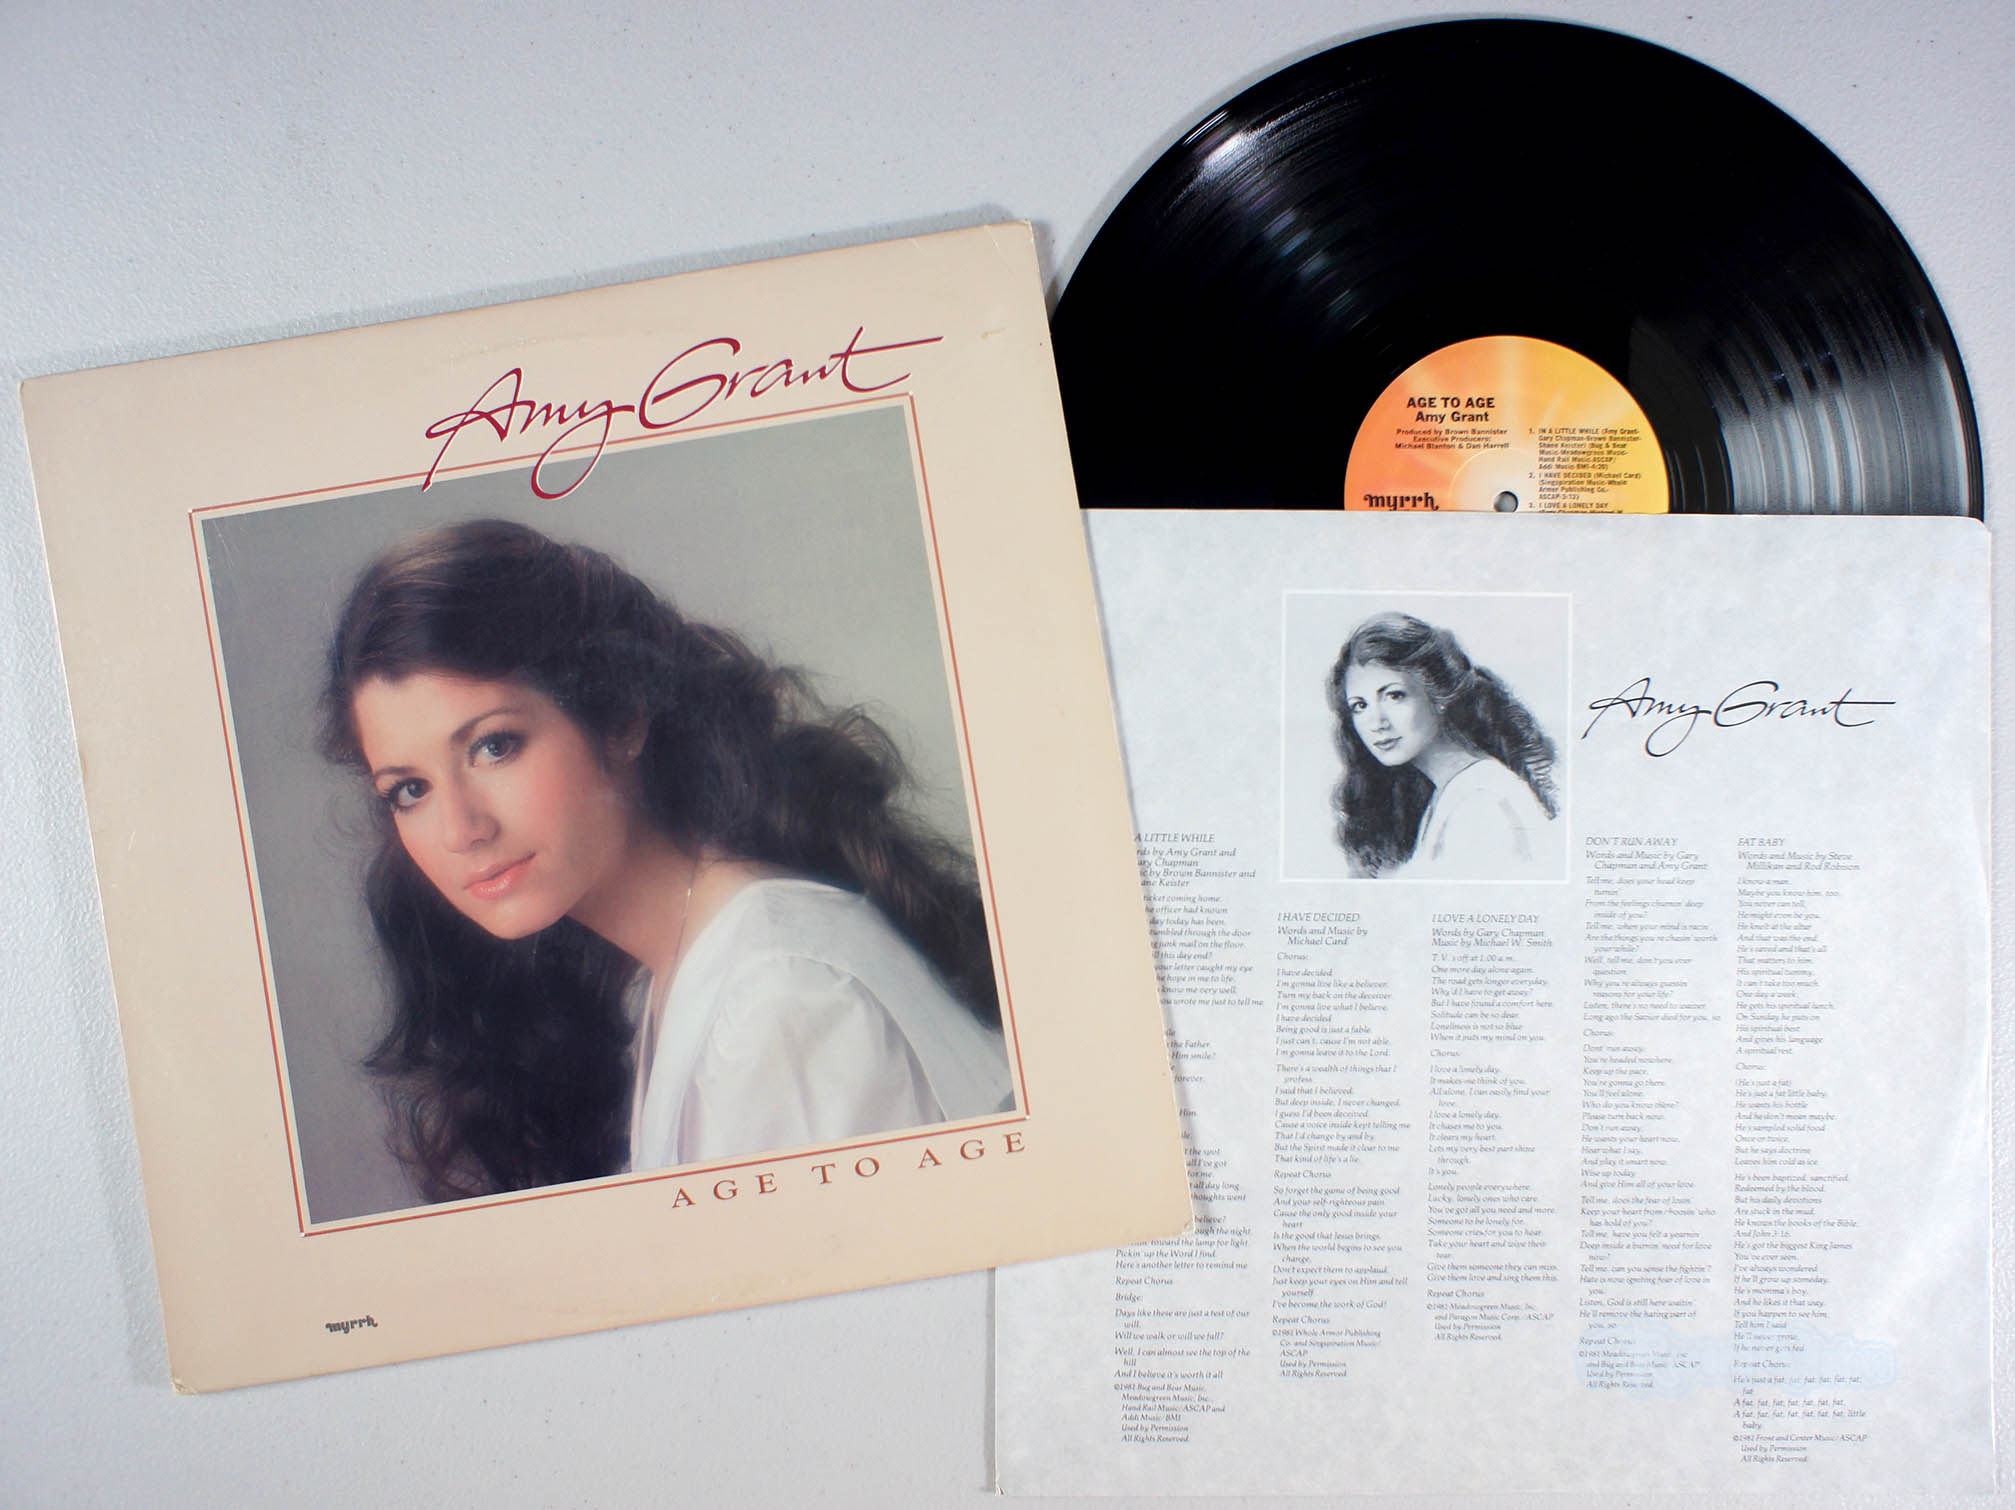 AMY GRANT - Age to Age - 33T